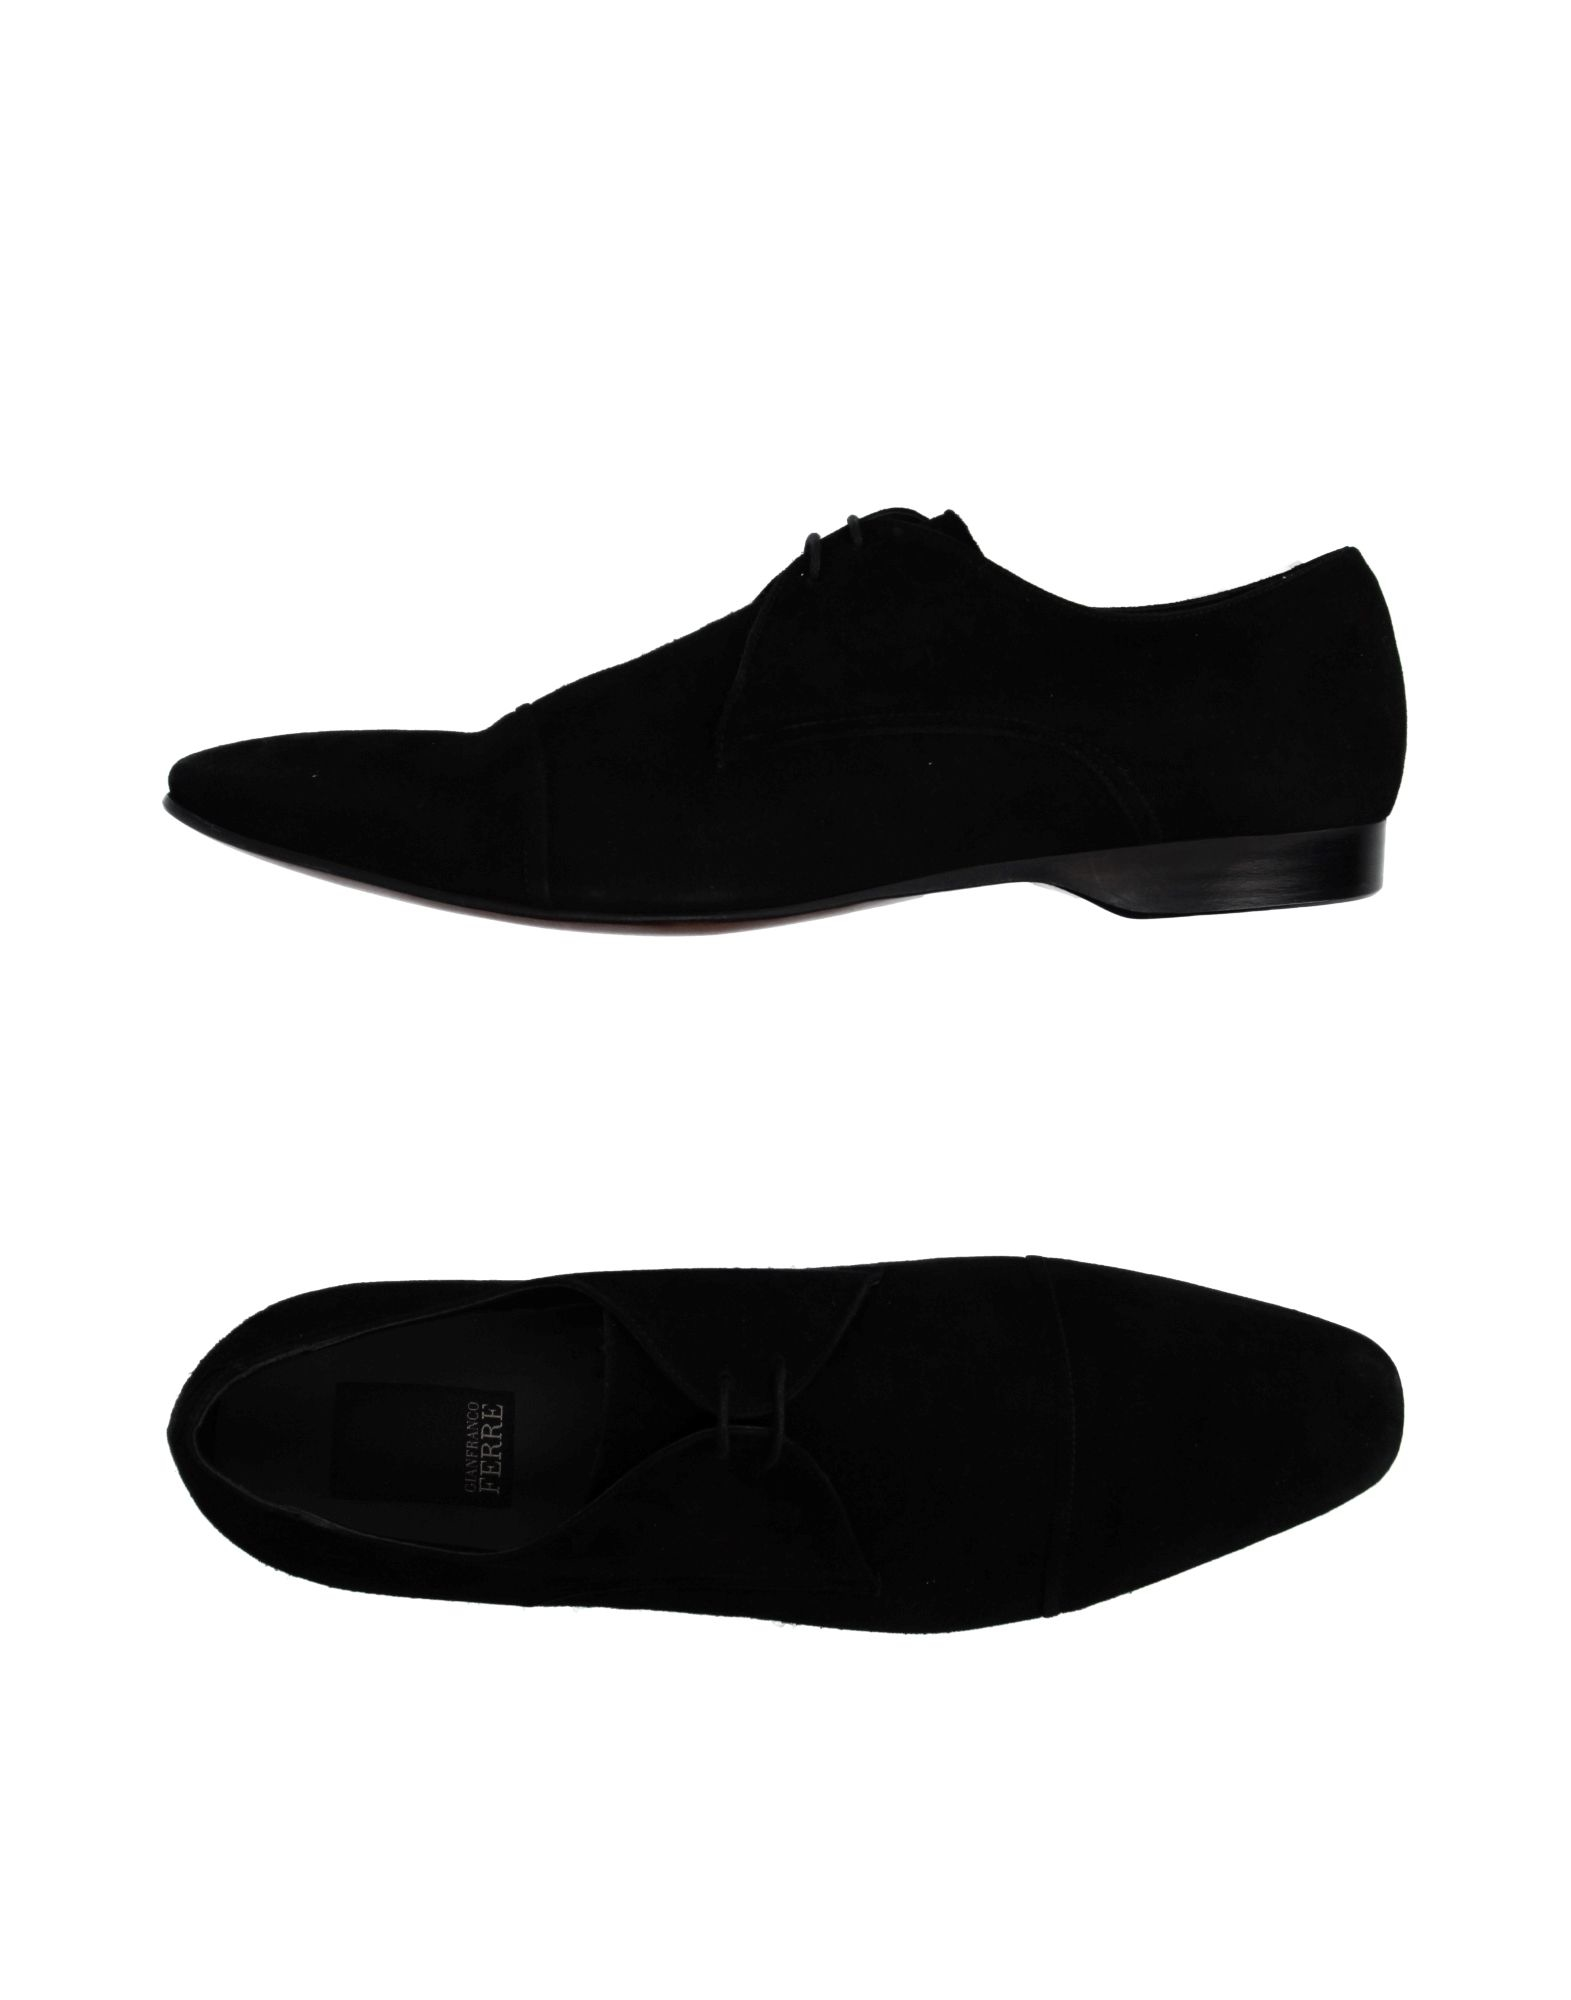 gianfranco ferr 233 lace up shoes in black for lyst